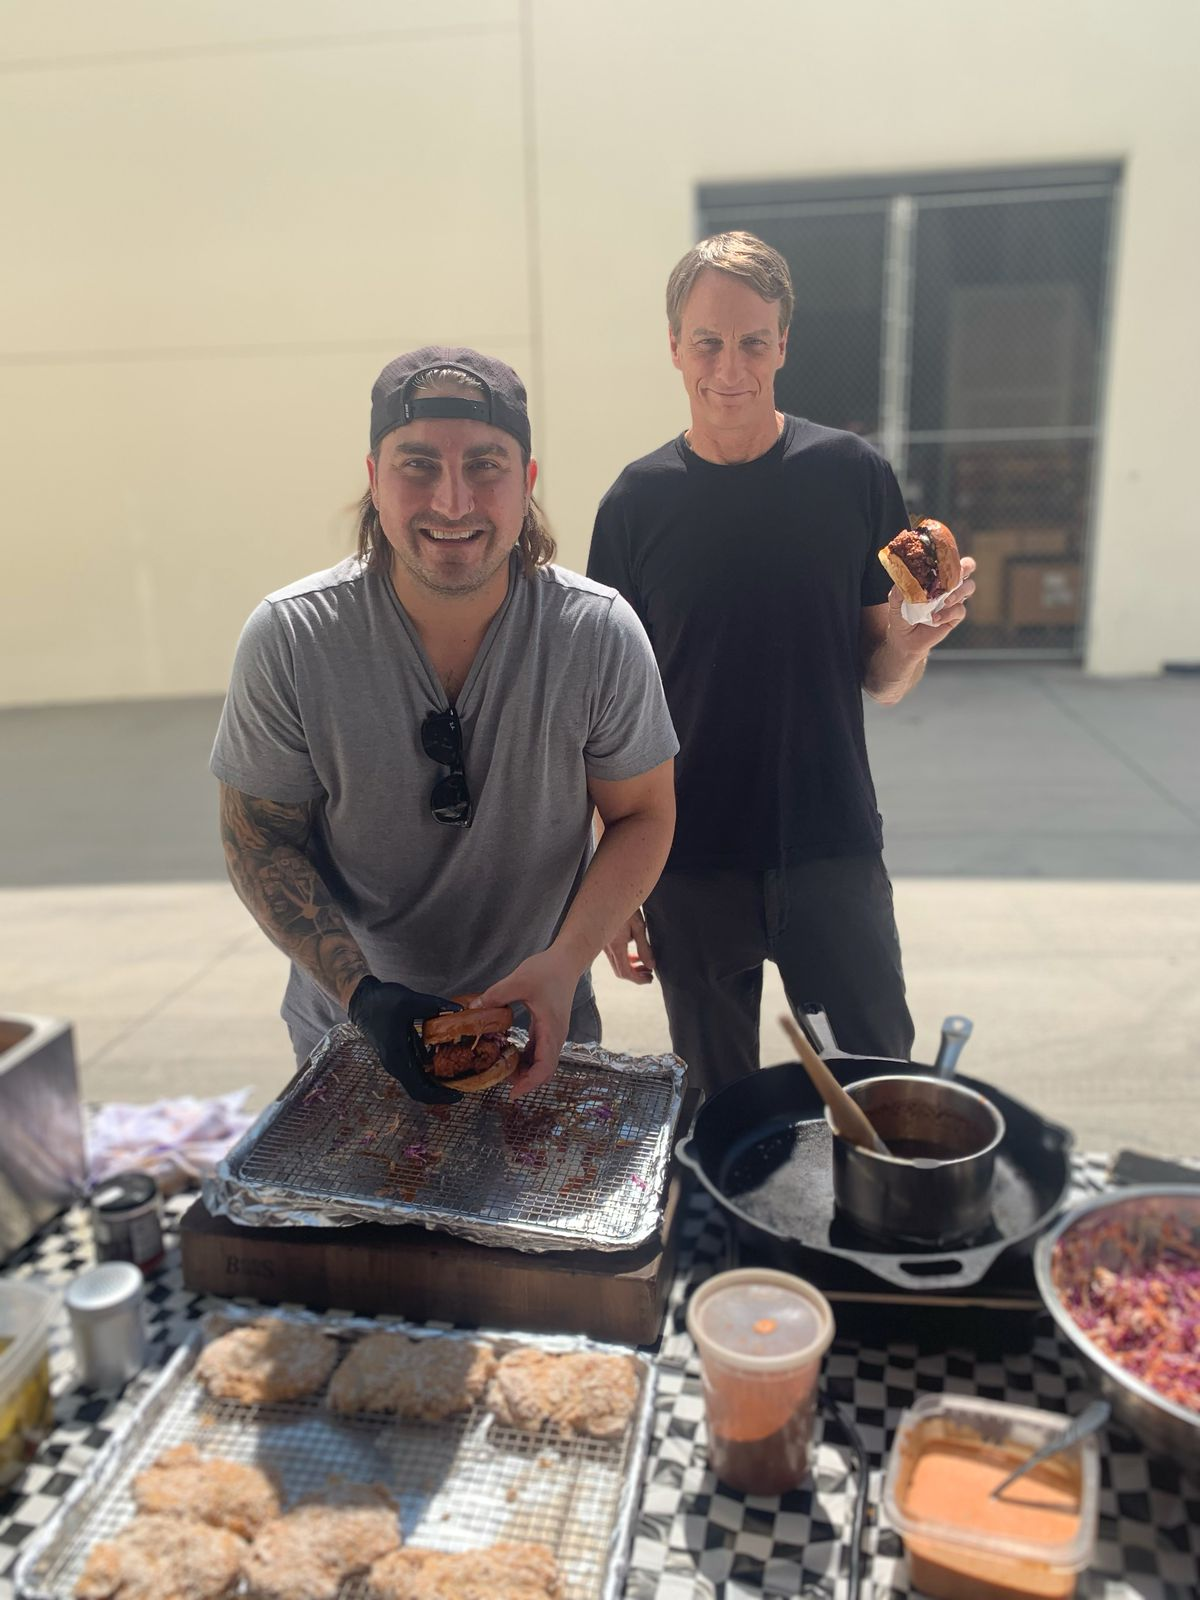 Chef Andrew Bachelier assembles fried chicken sandwiches while Tony Hawk stands behind him holding a sandwich.